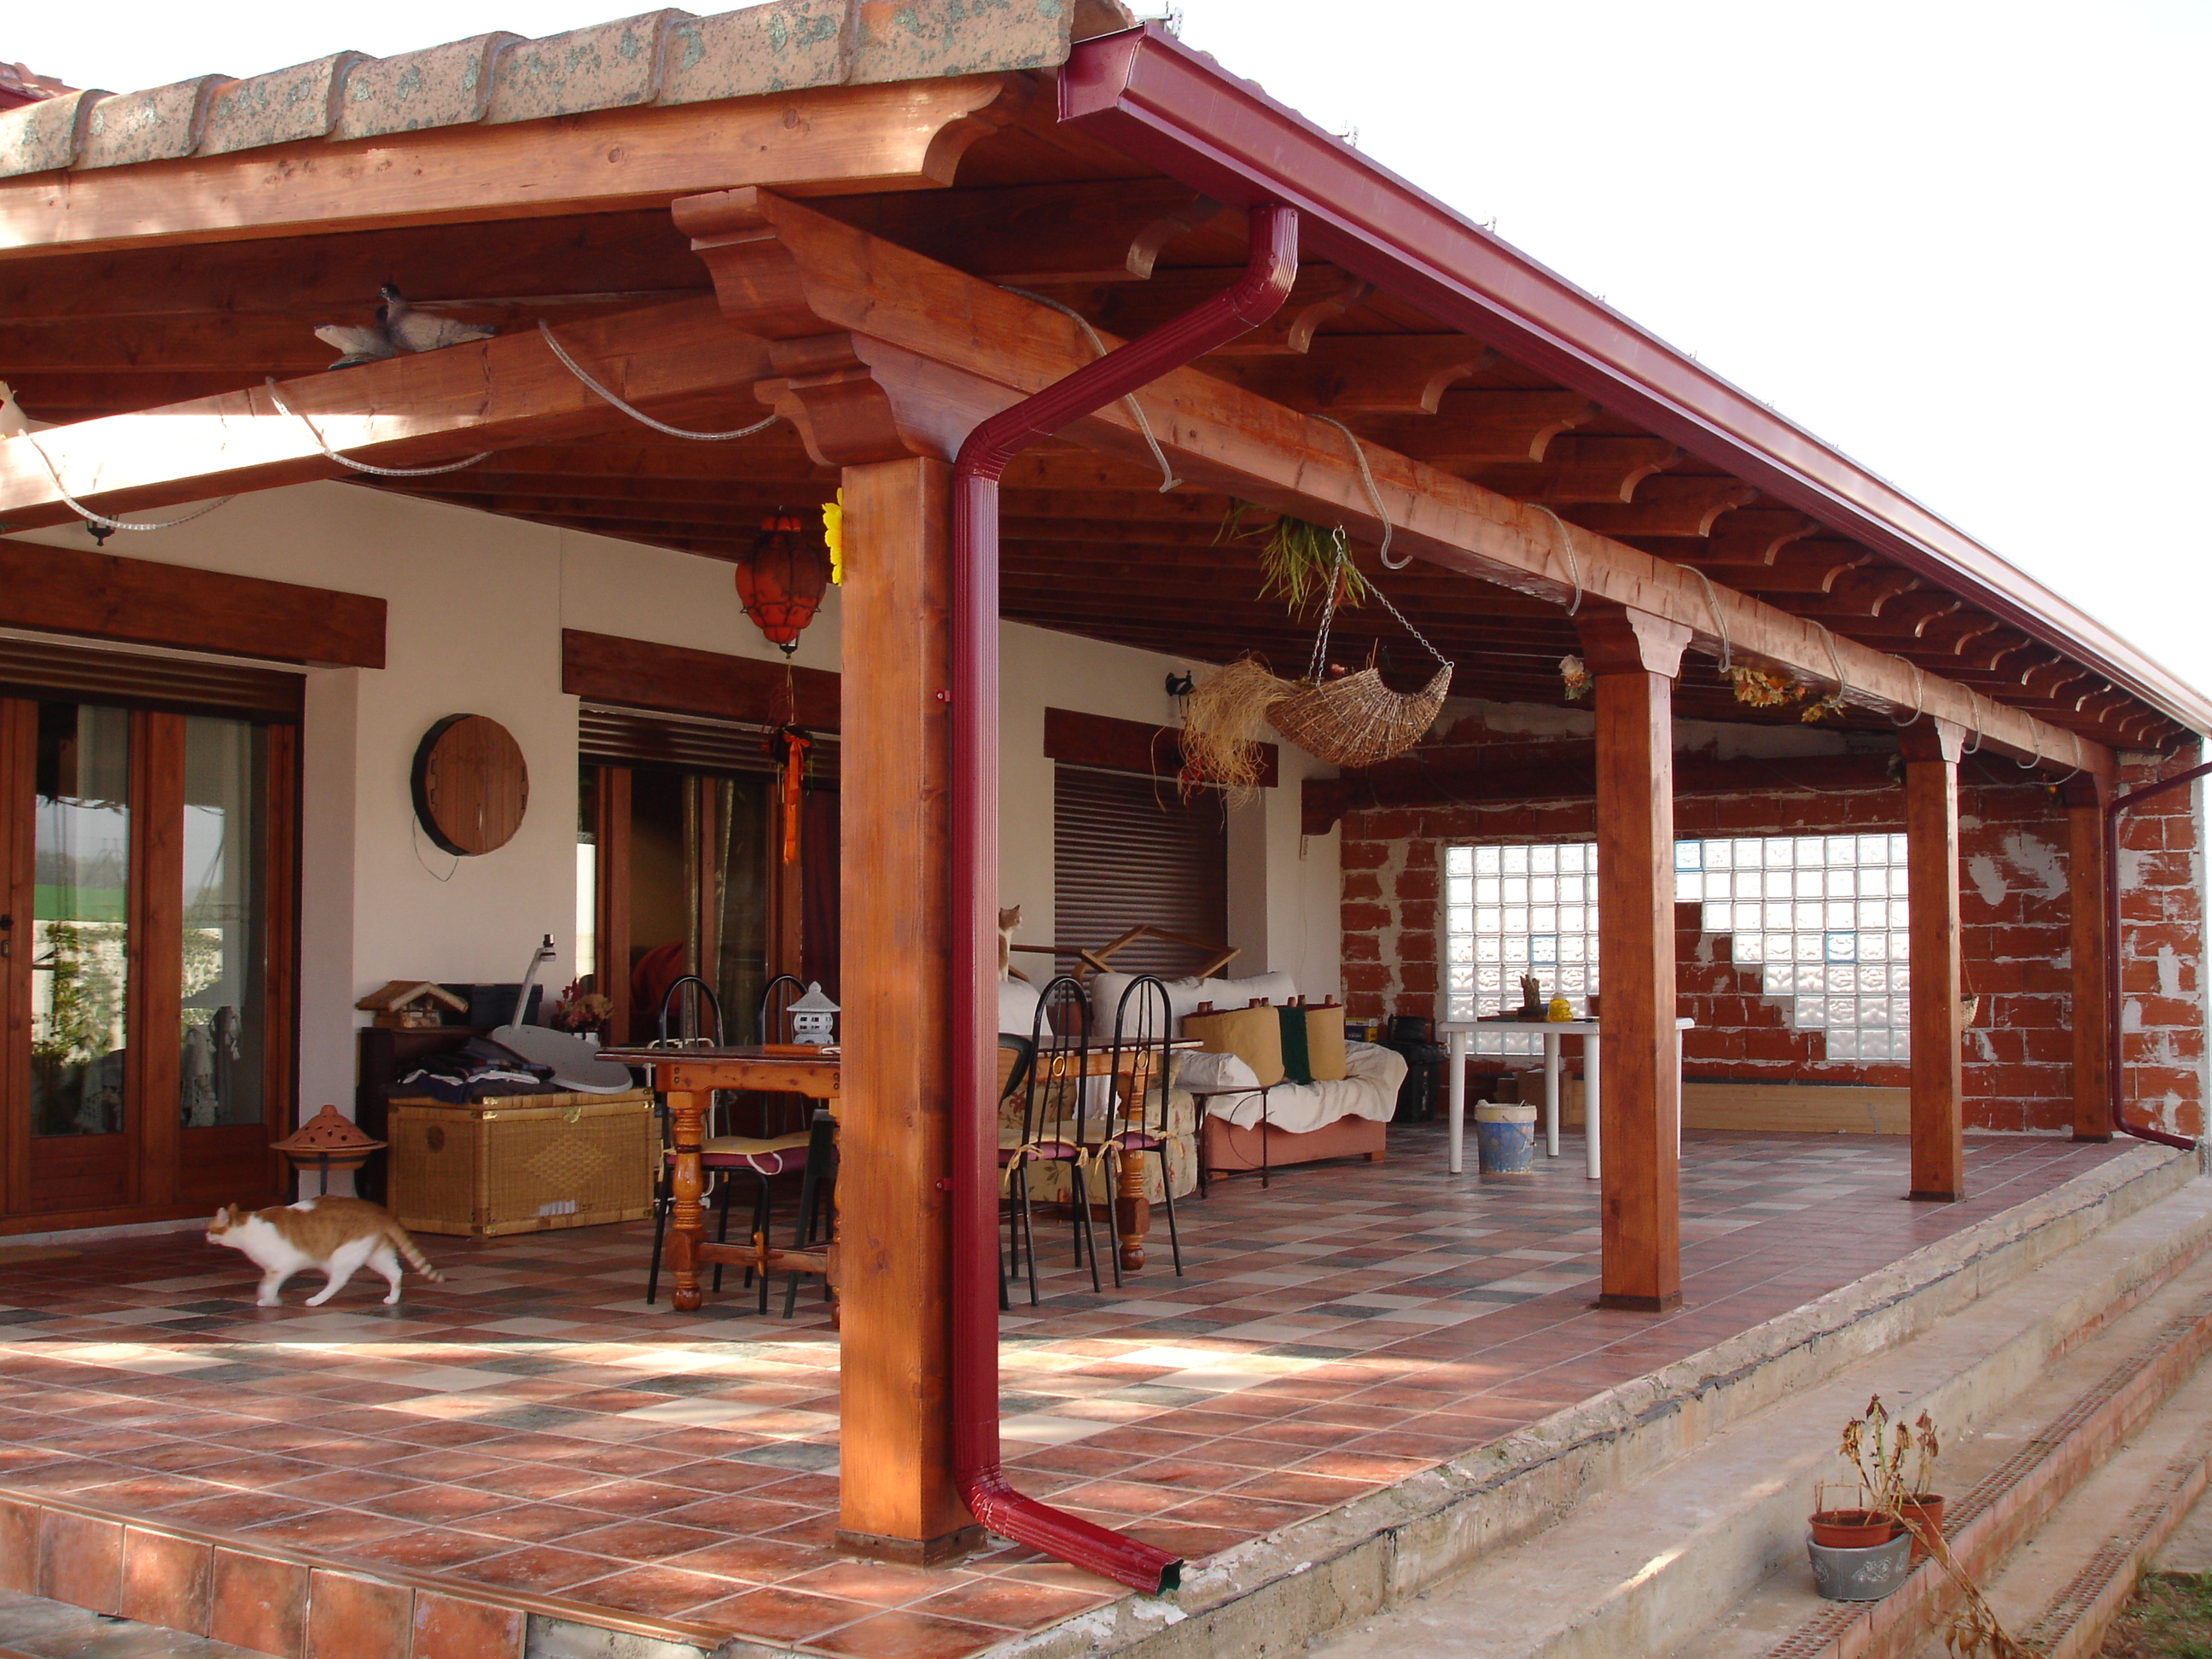 Pergolas y porches de madera trabajos realizados for Tipos de techos para porches